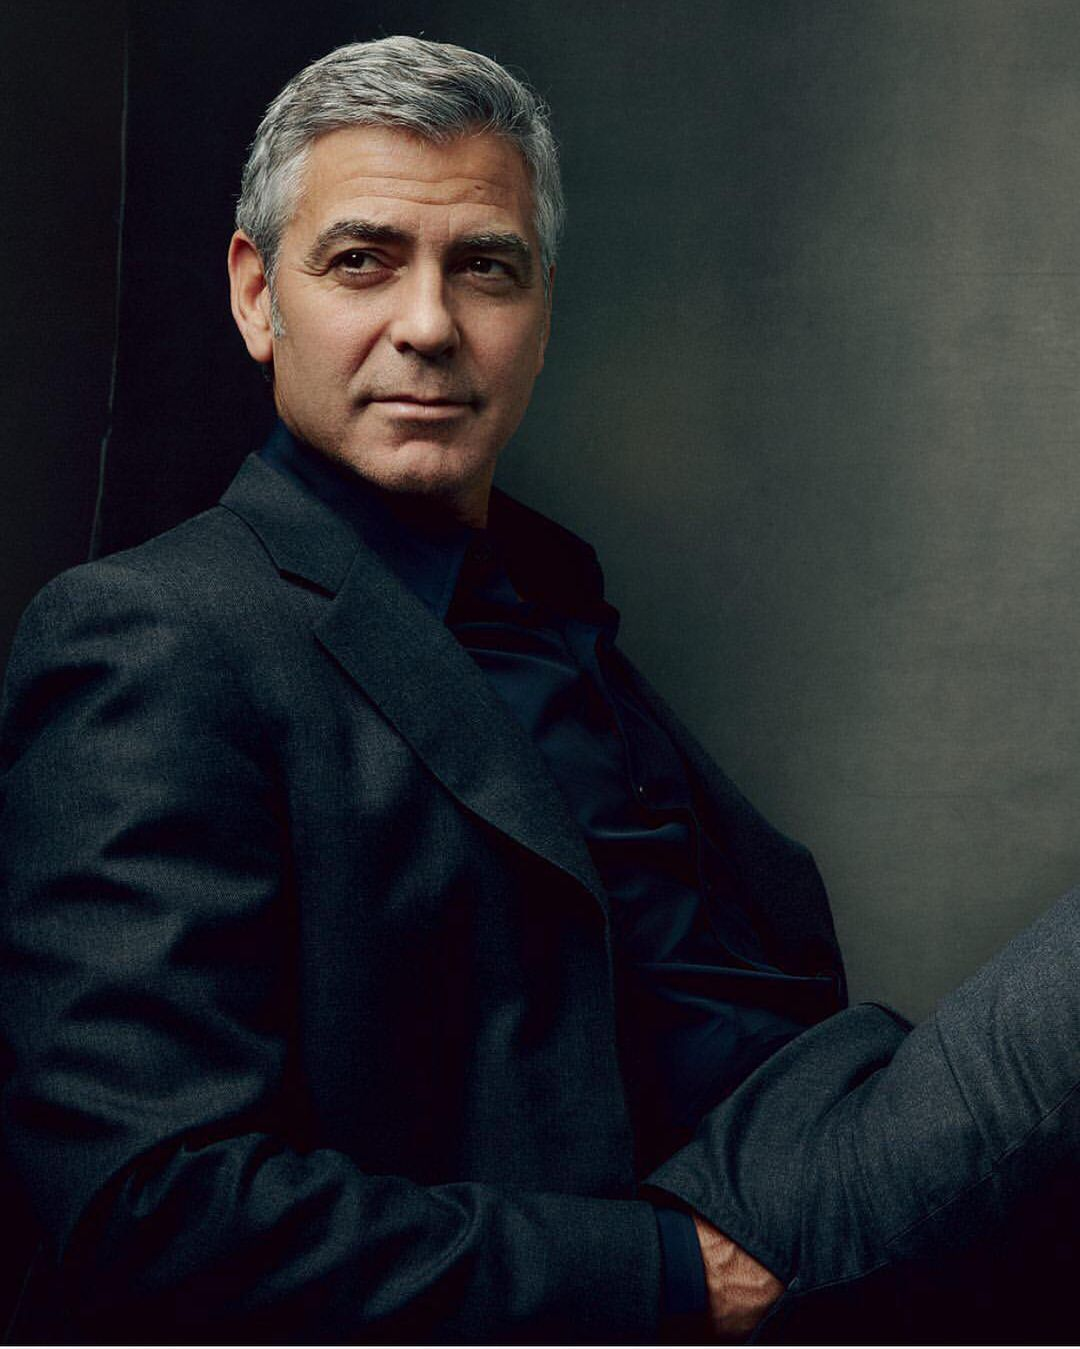 The Gorgeous George Clooney has a Colostomy bag